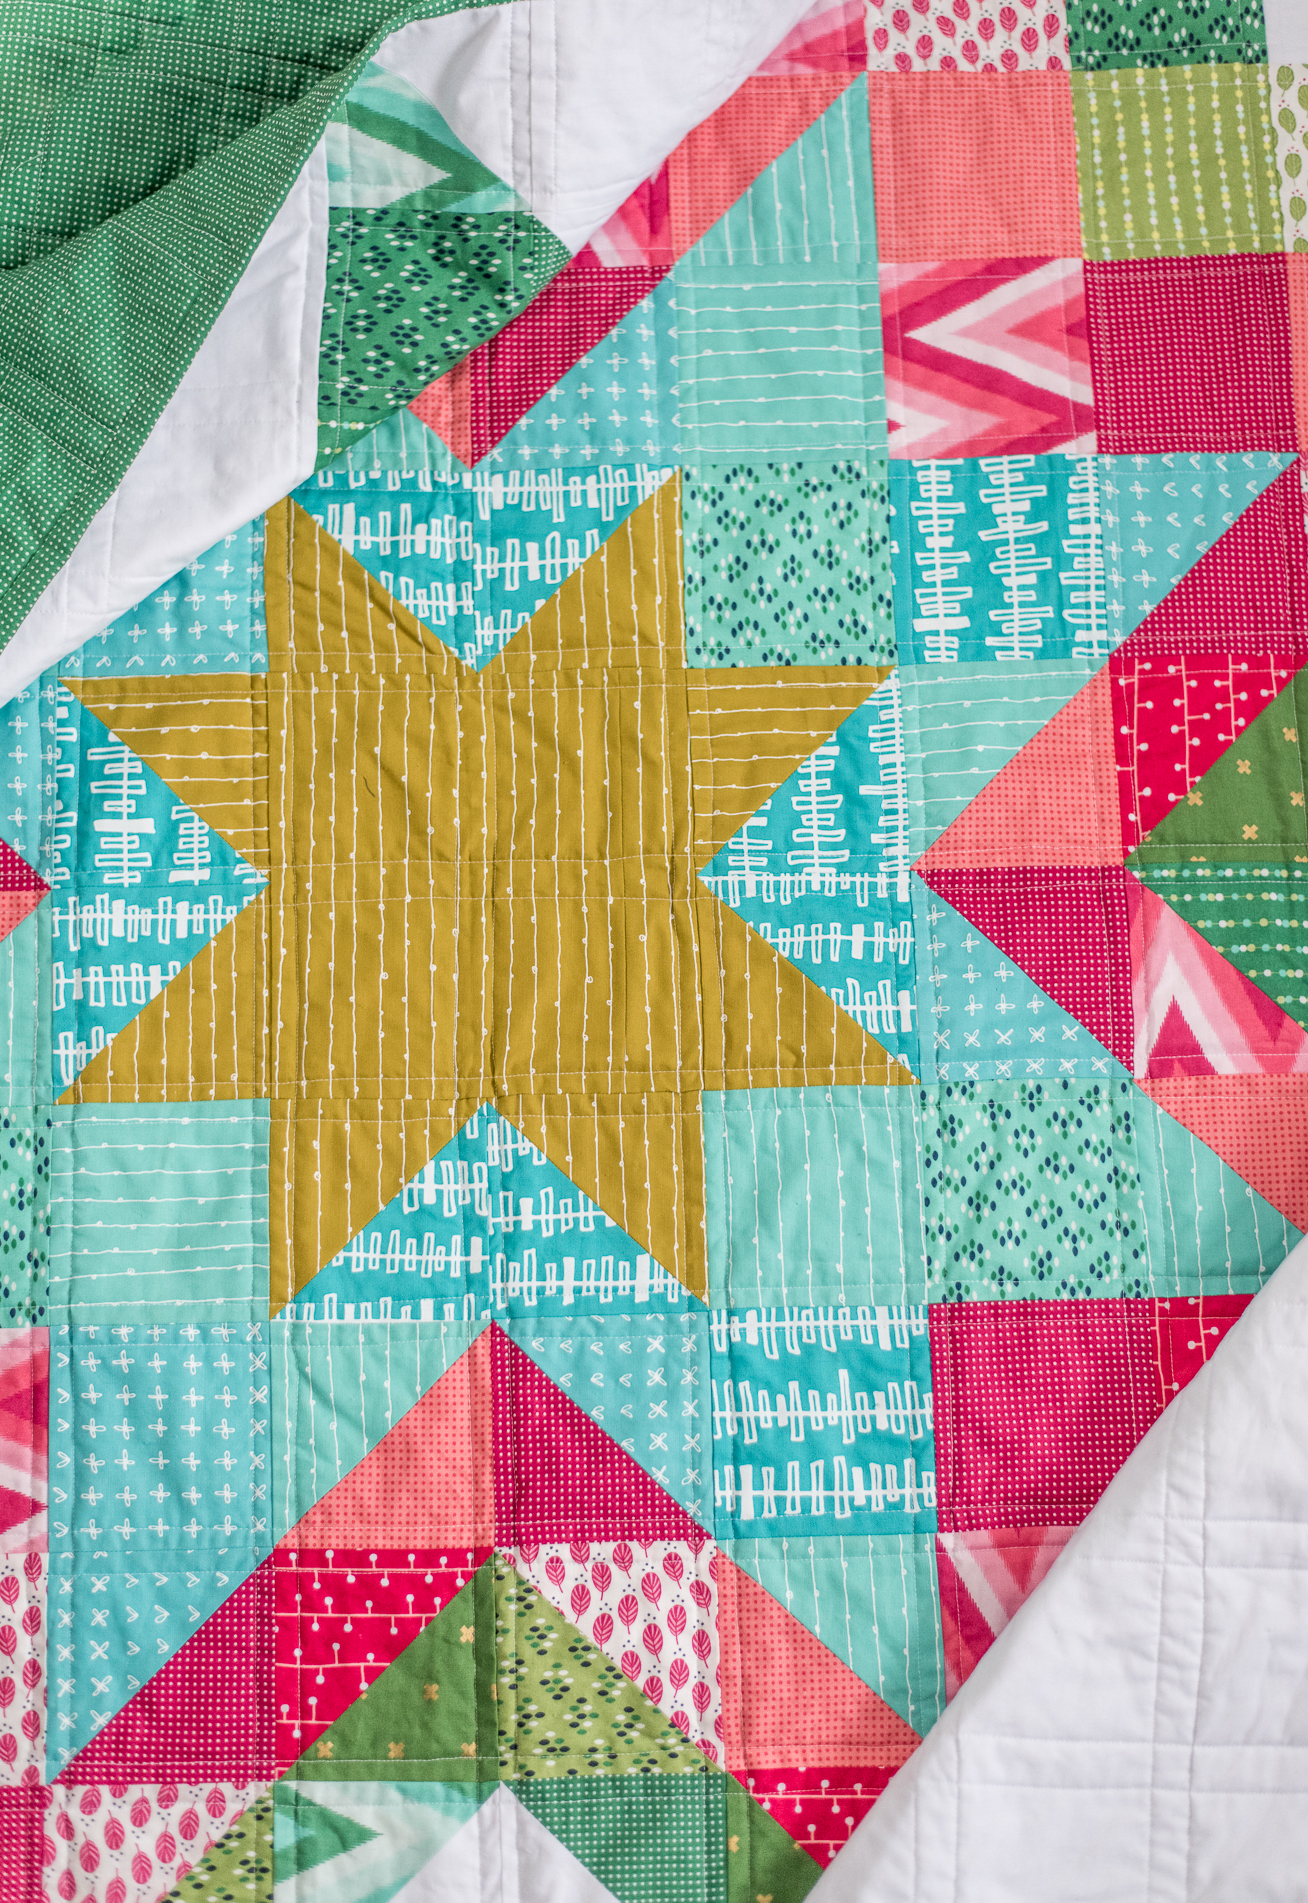 Expanding Stars Quilt The Scrappy Christmas Version Quilty Love